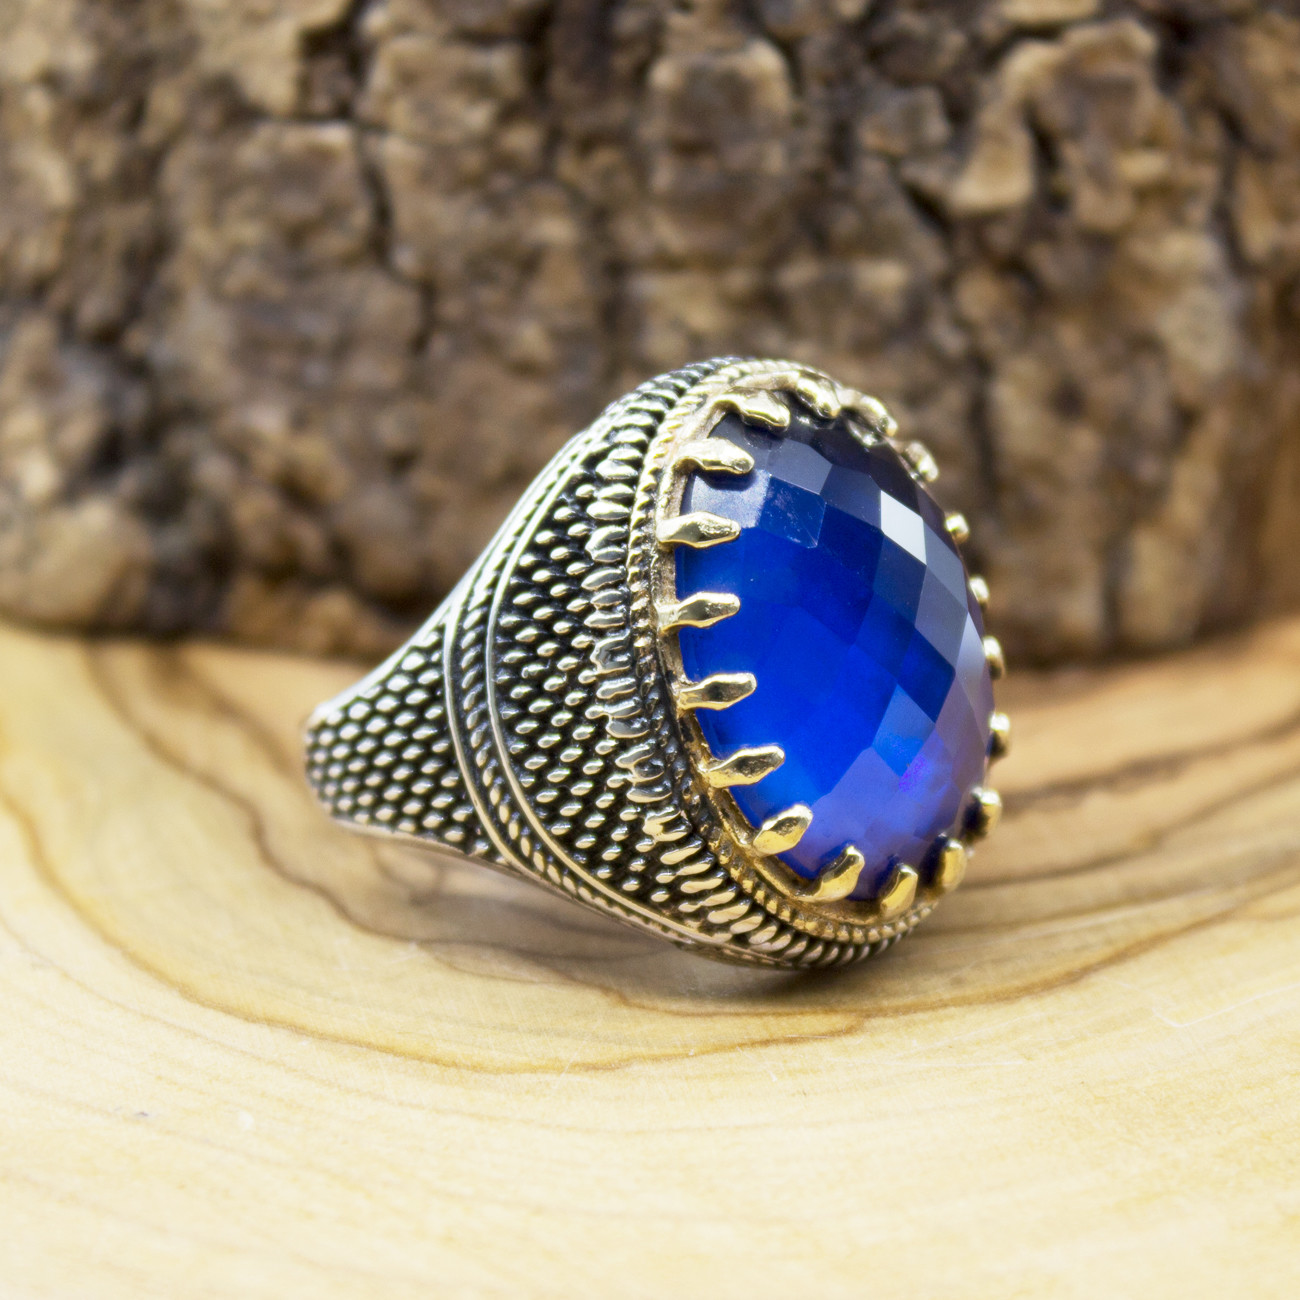 925 Sterling Silver Ring for Men Blue Zircon Stone Jewelry fashion vintage Gift Aqeq Onyx Mens Rings All Size (made in Turkey)